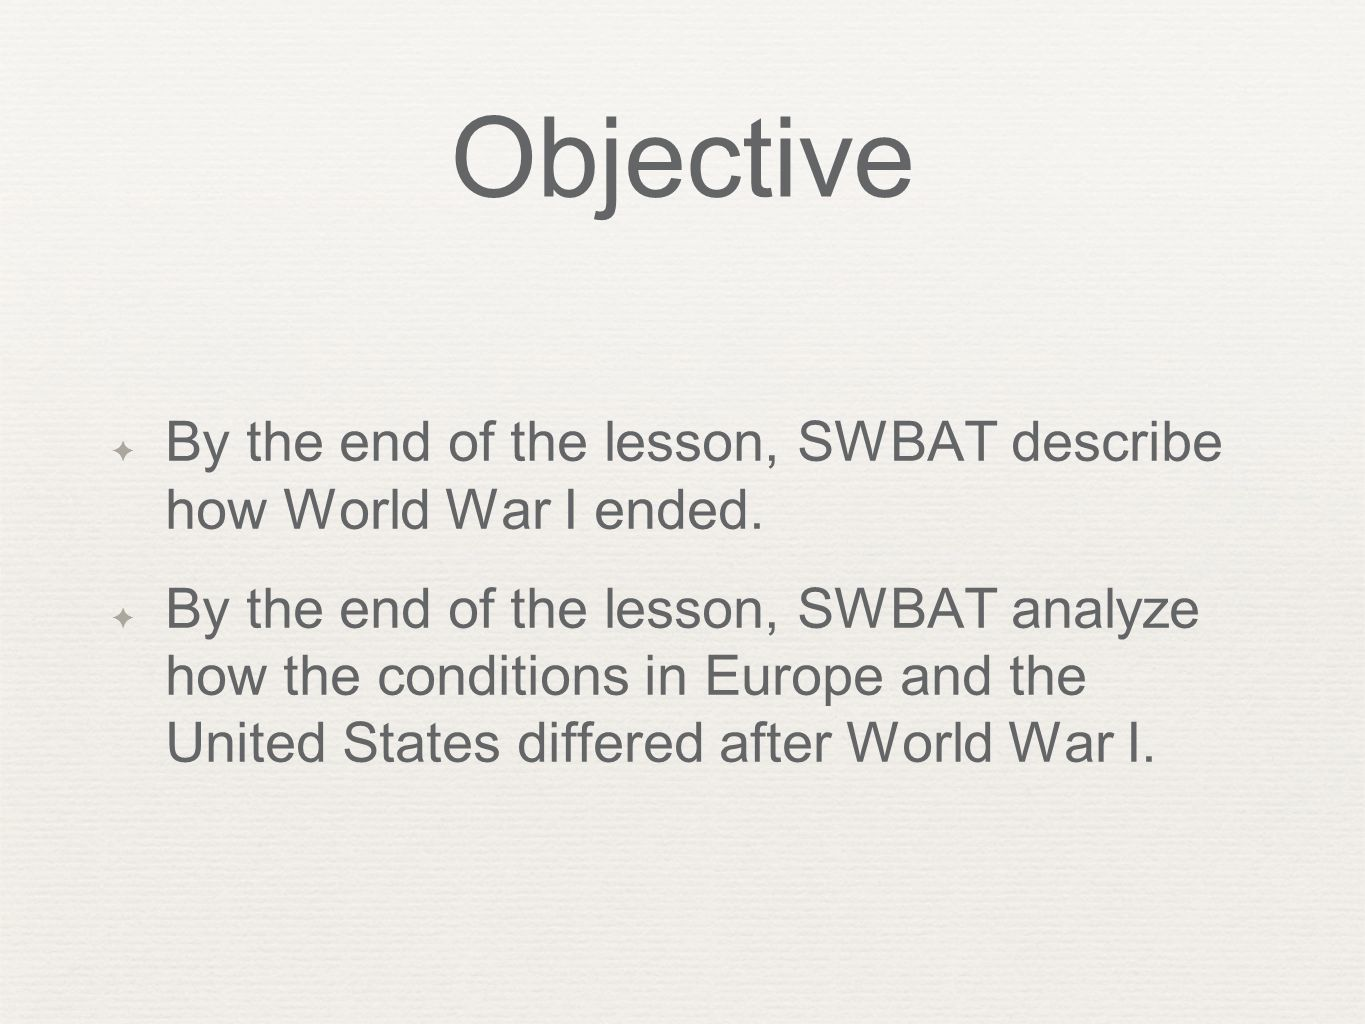 Objective By the end of the lesson, SWBAT describe how World War I ended.